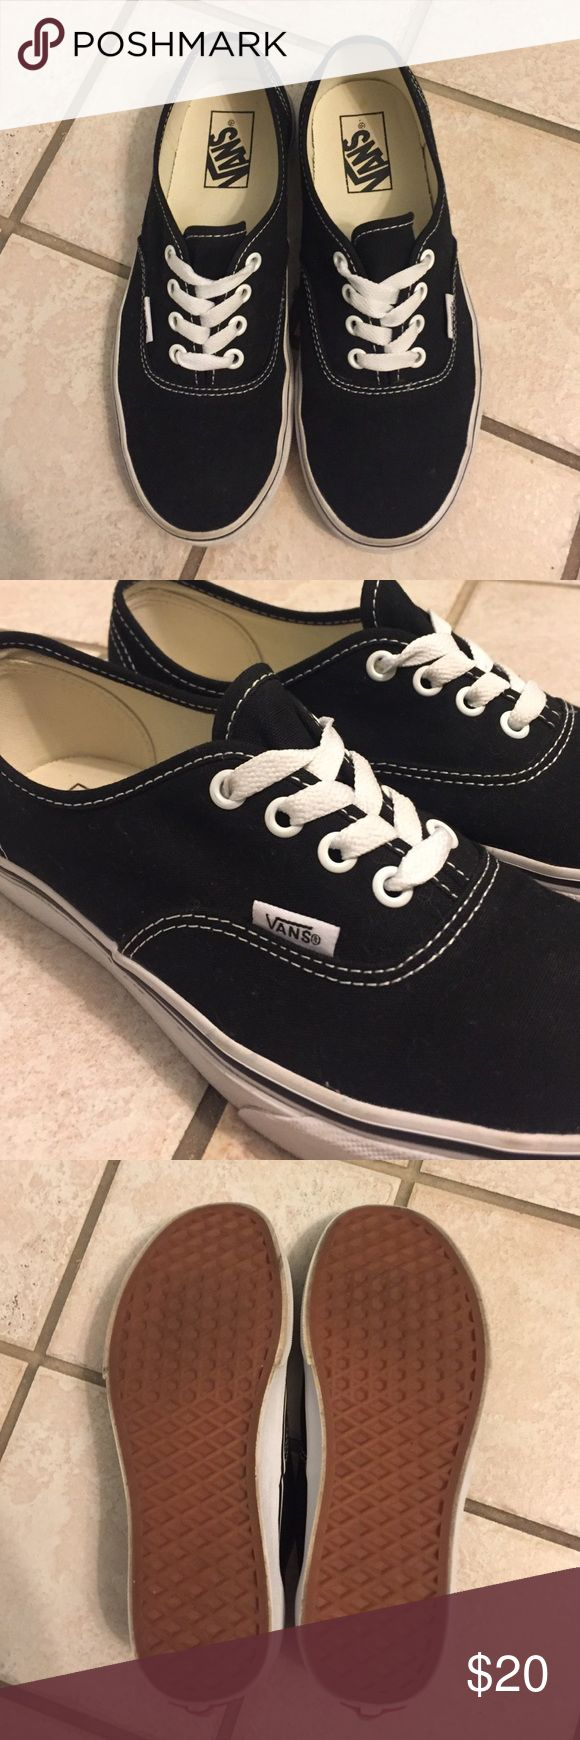 Vans Authentic Black and White sneakers Black vans sneakers with white detailing. Only worn once. Vans Shoes Sneakers